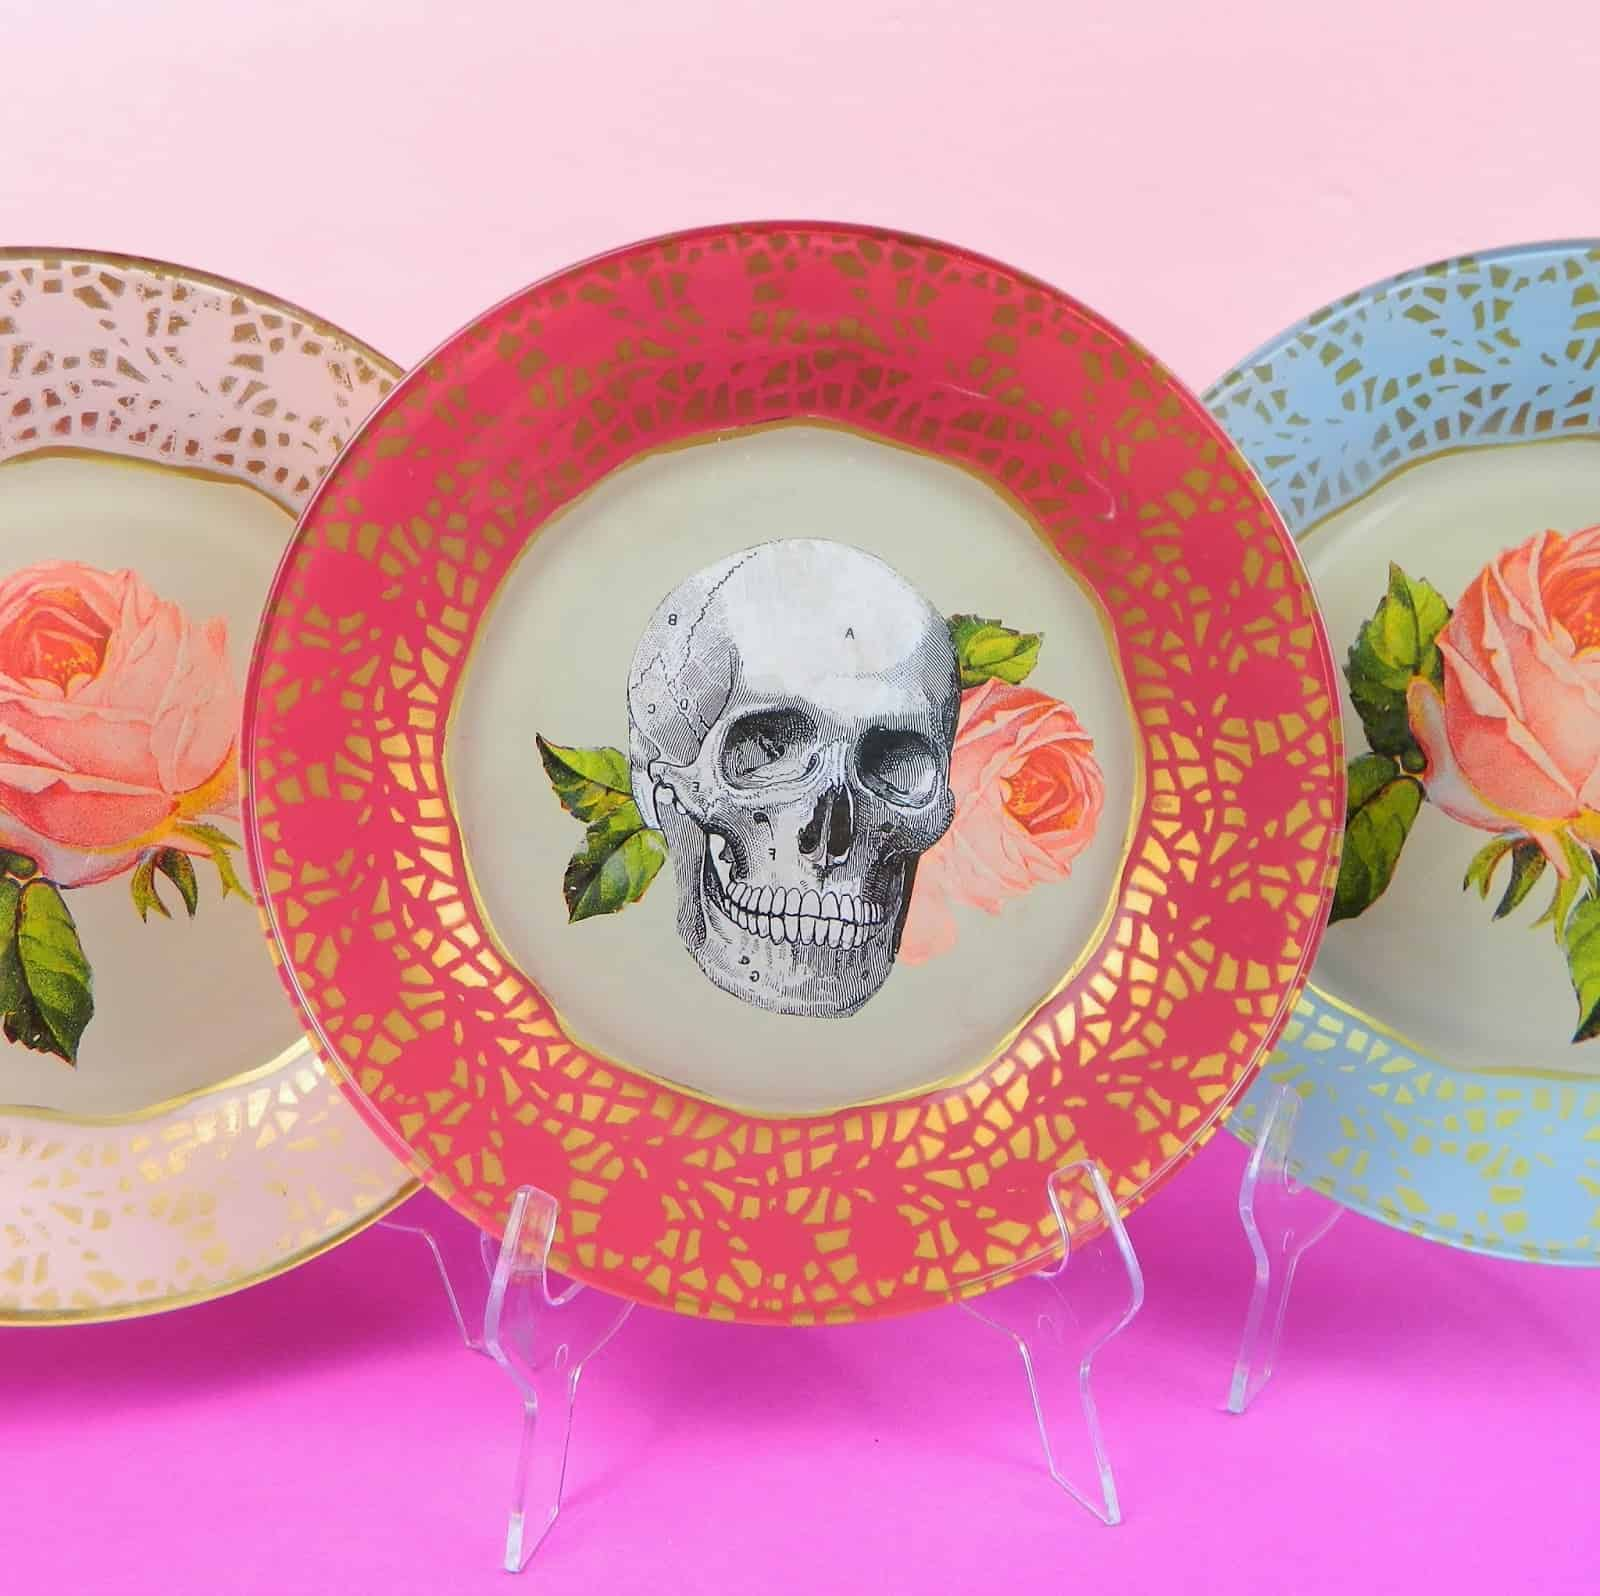 Decoupaged and painted glass plates